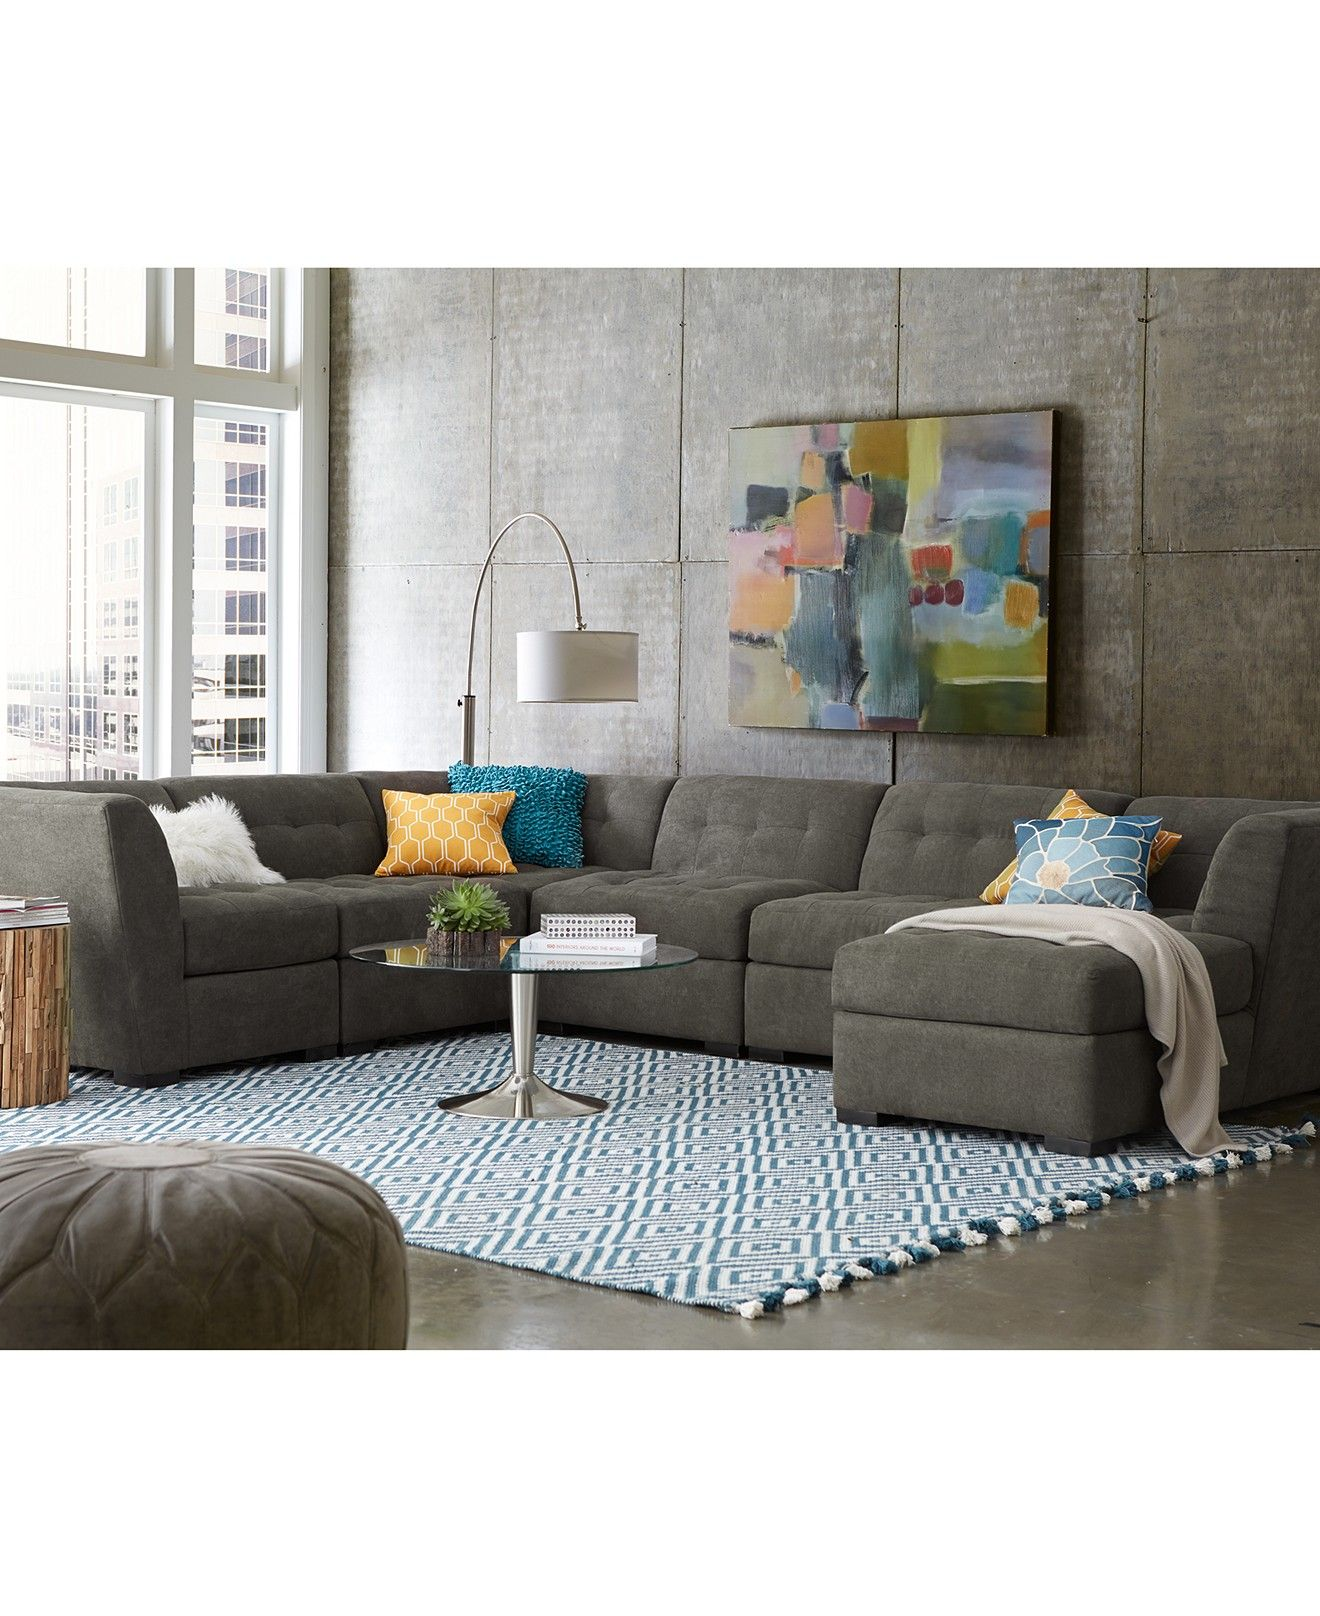 Best Roxanne Fabric 6 Piece Modular Sectional Sofa 2 Corner 640 x 480